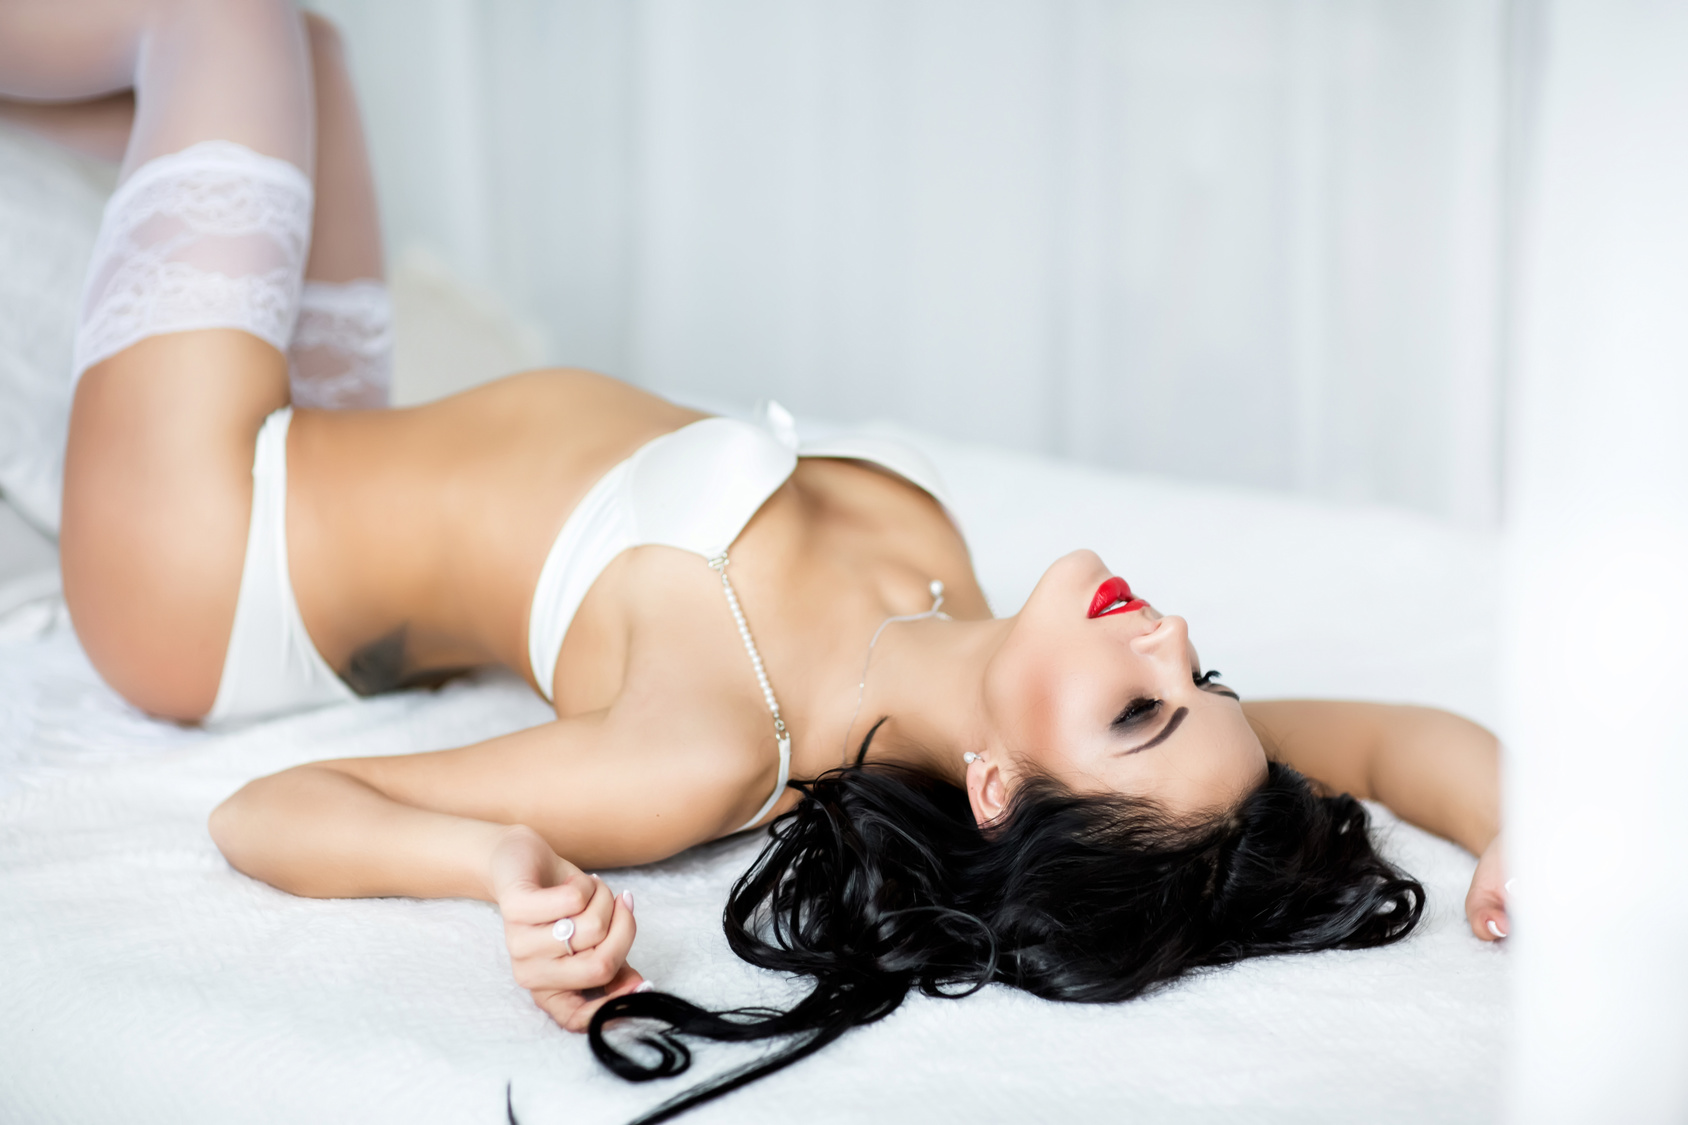 escort brabant sex massage salons